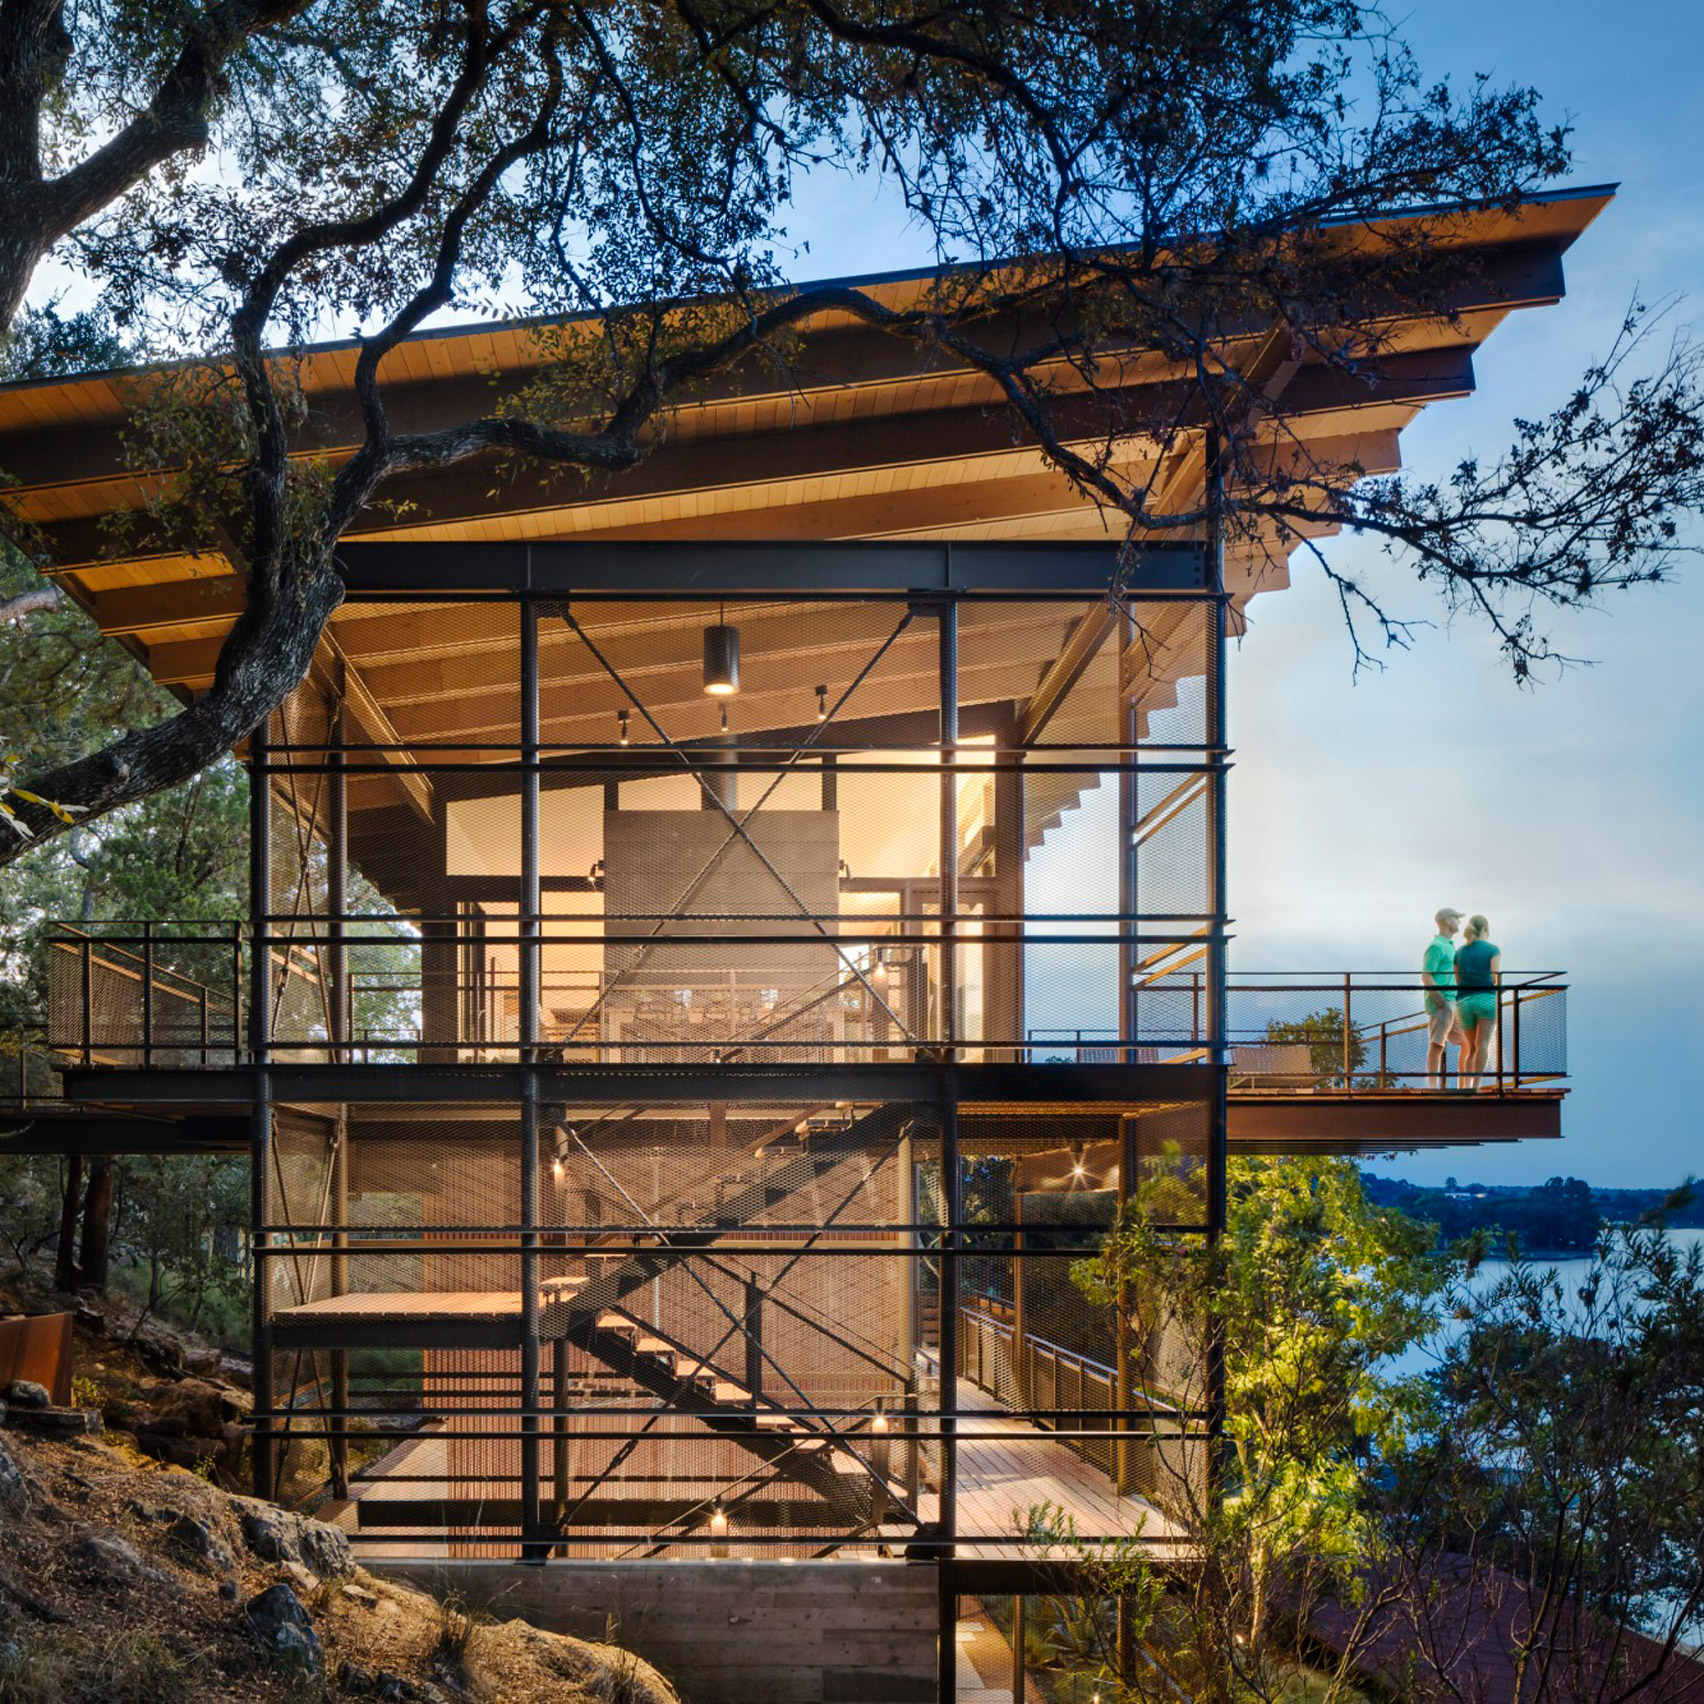 Two Hillside Cabins In The Trees By Feldman Architecture: #3Novices: 10 US Holiday Homes That Celebrate The American